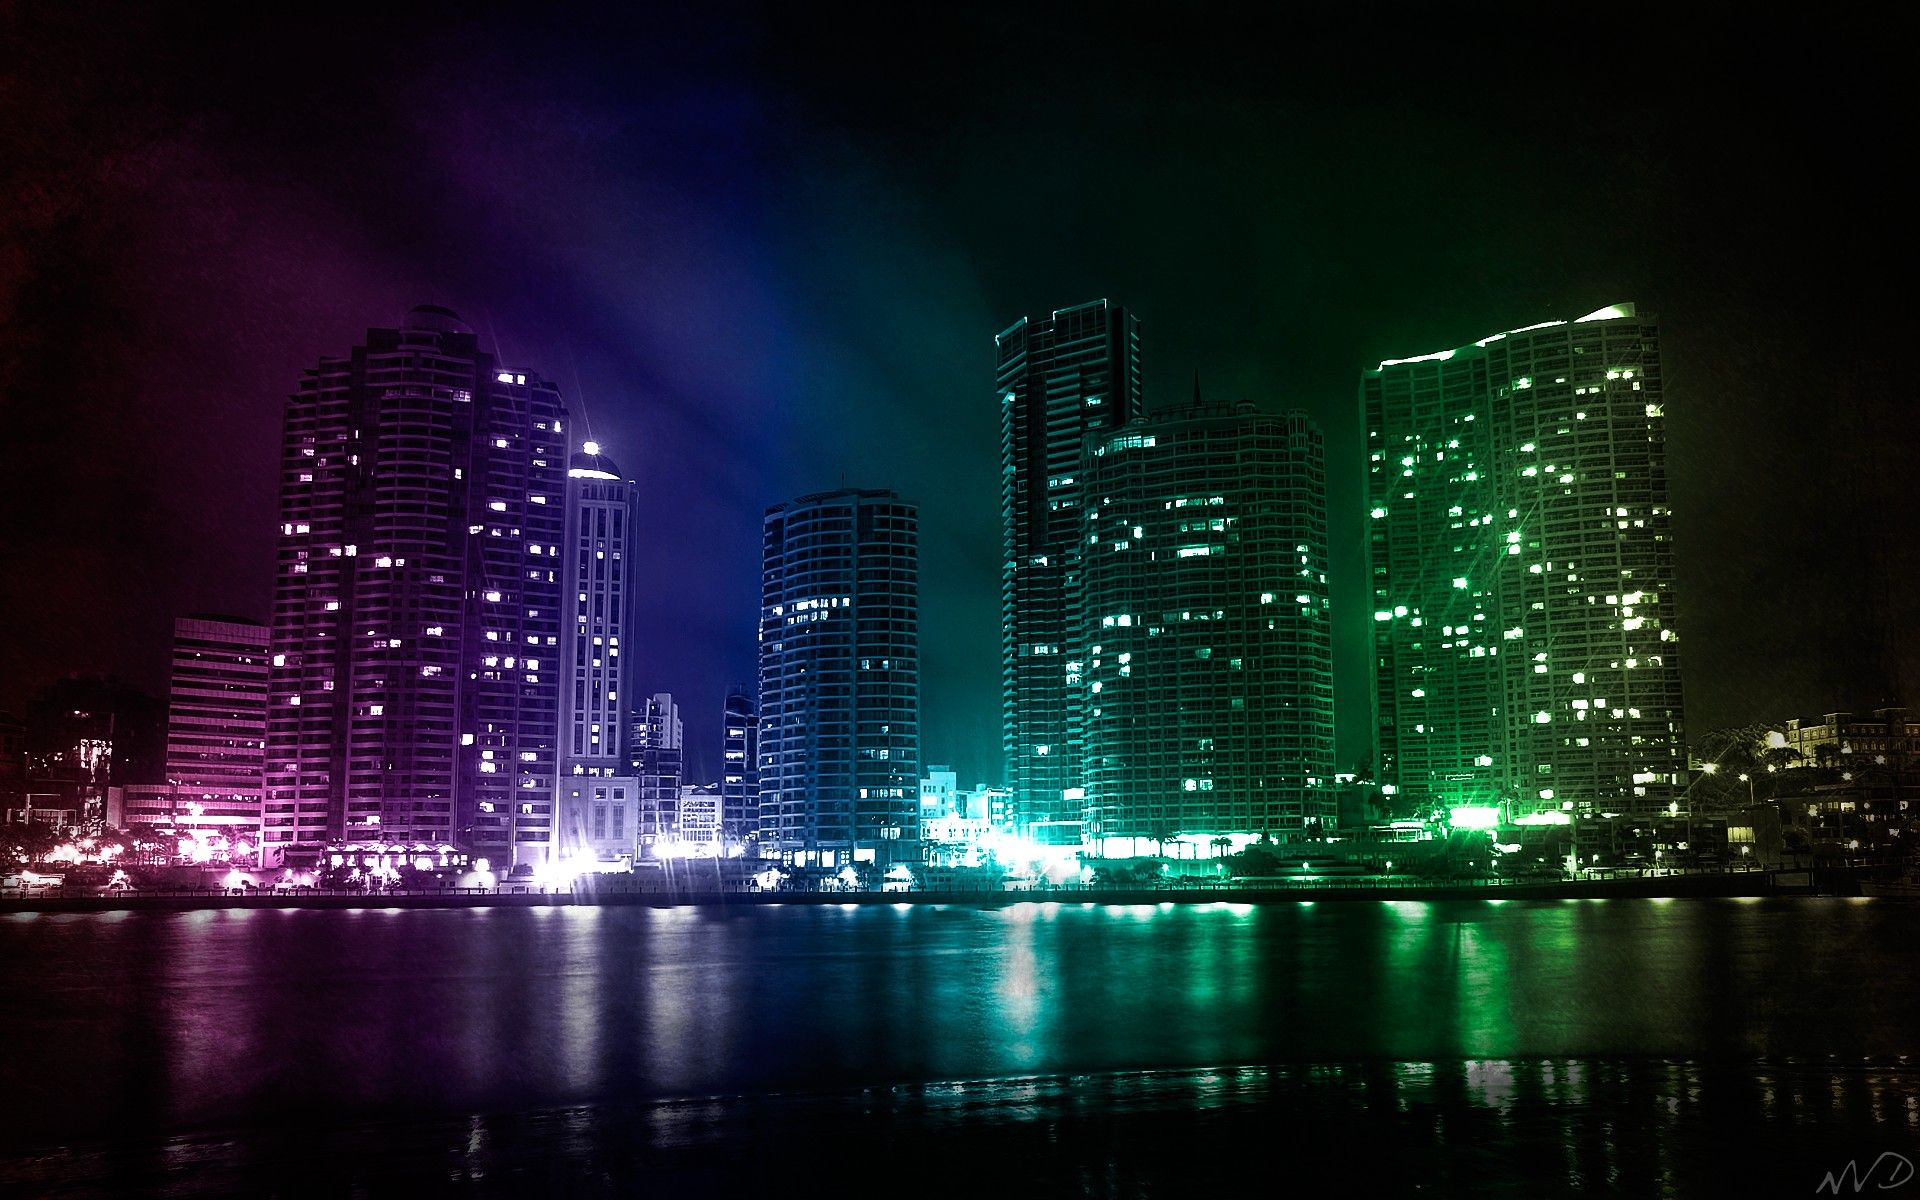 Cool Wallpapers Lights City City Lights Wallpaper Lit Wallpaper City Wallpaper